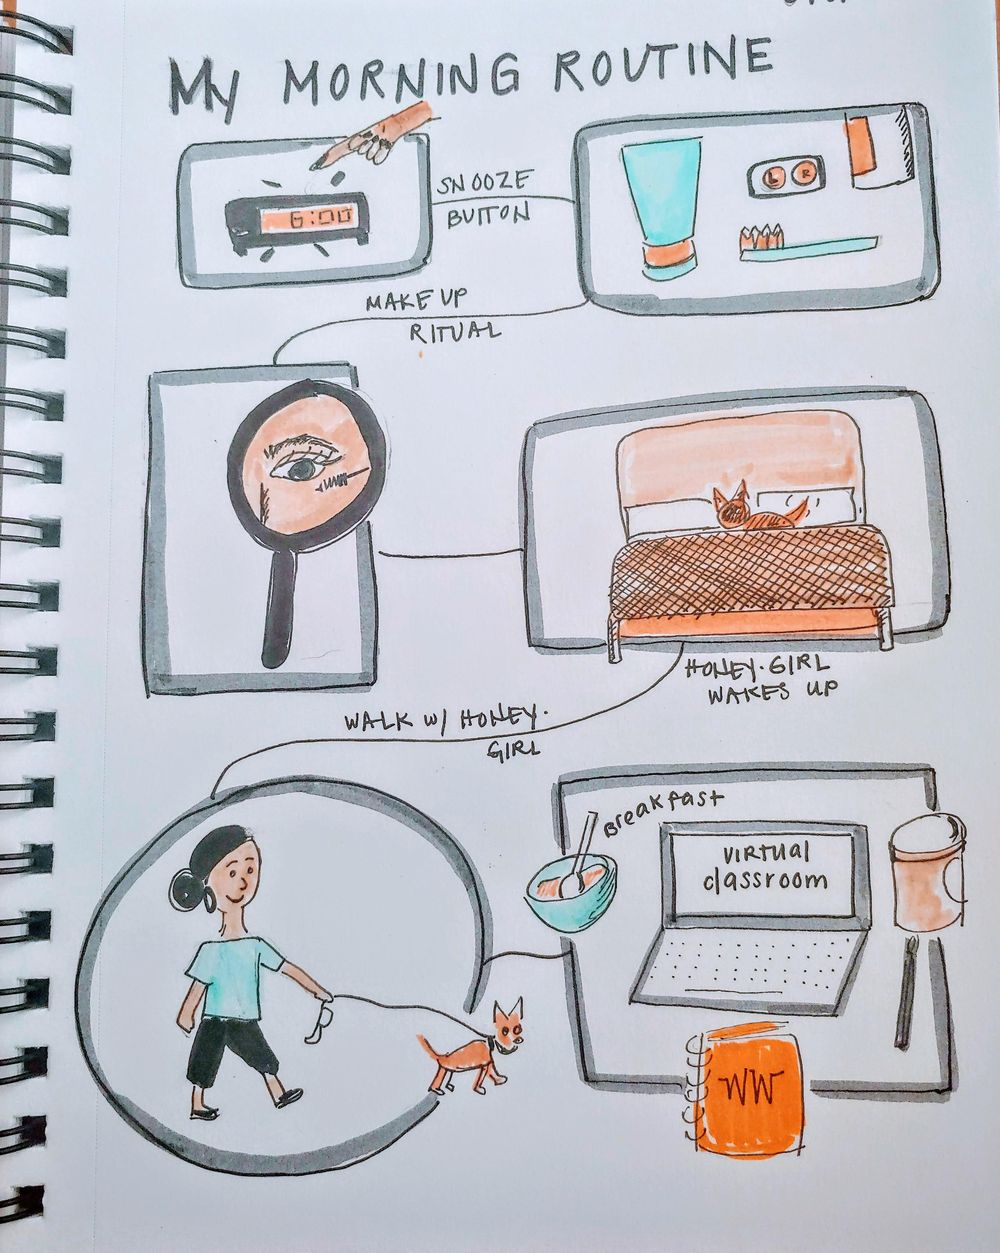 My Morning Routine - image 1 - student project